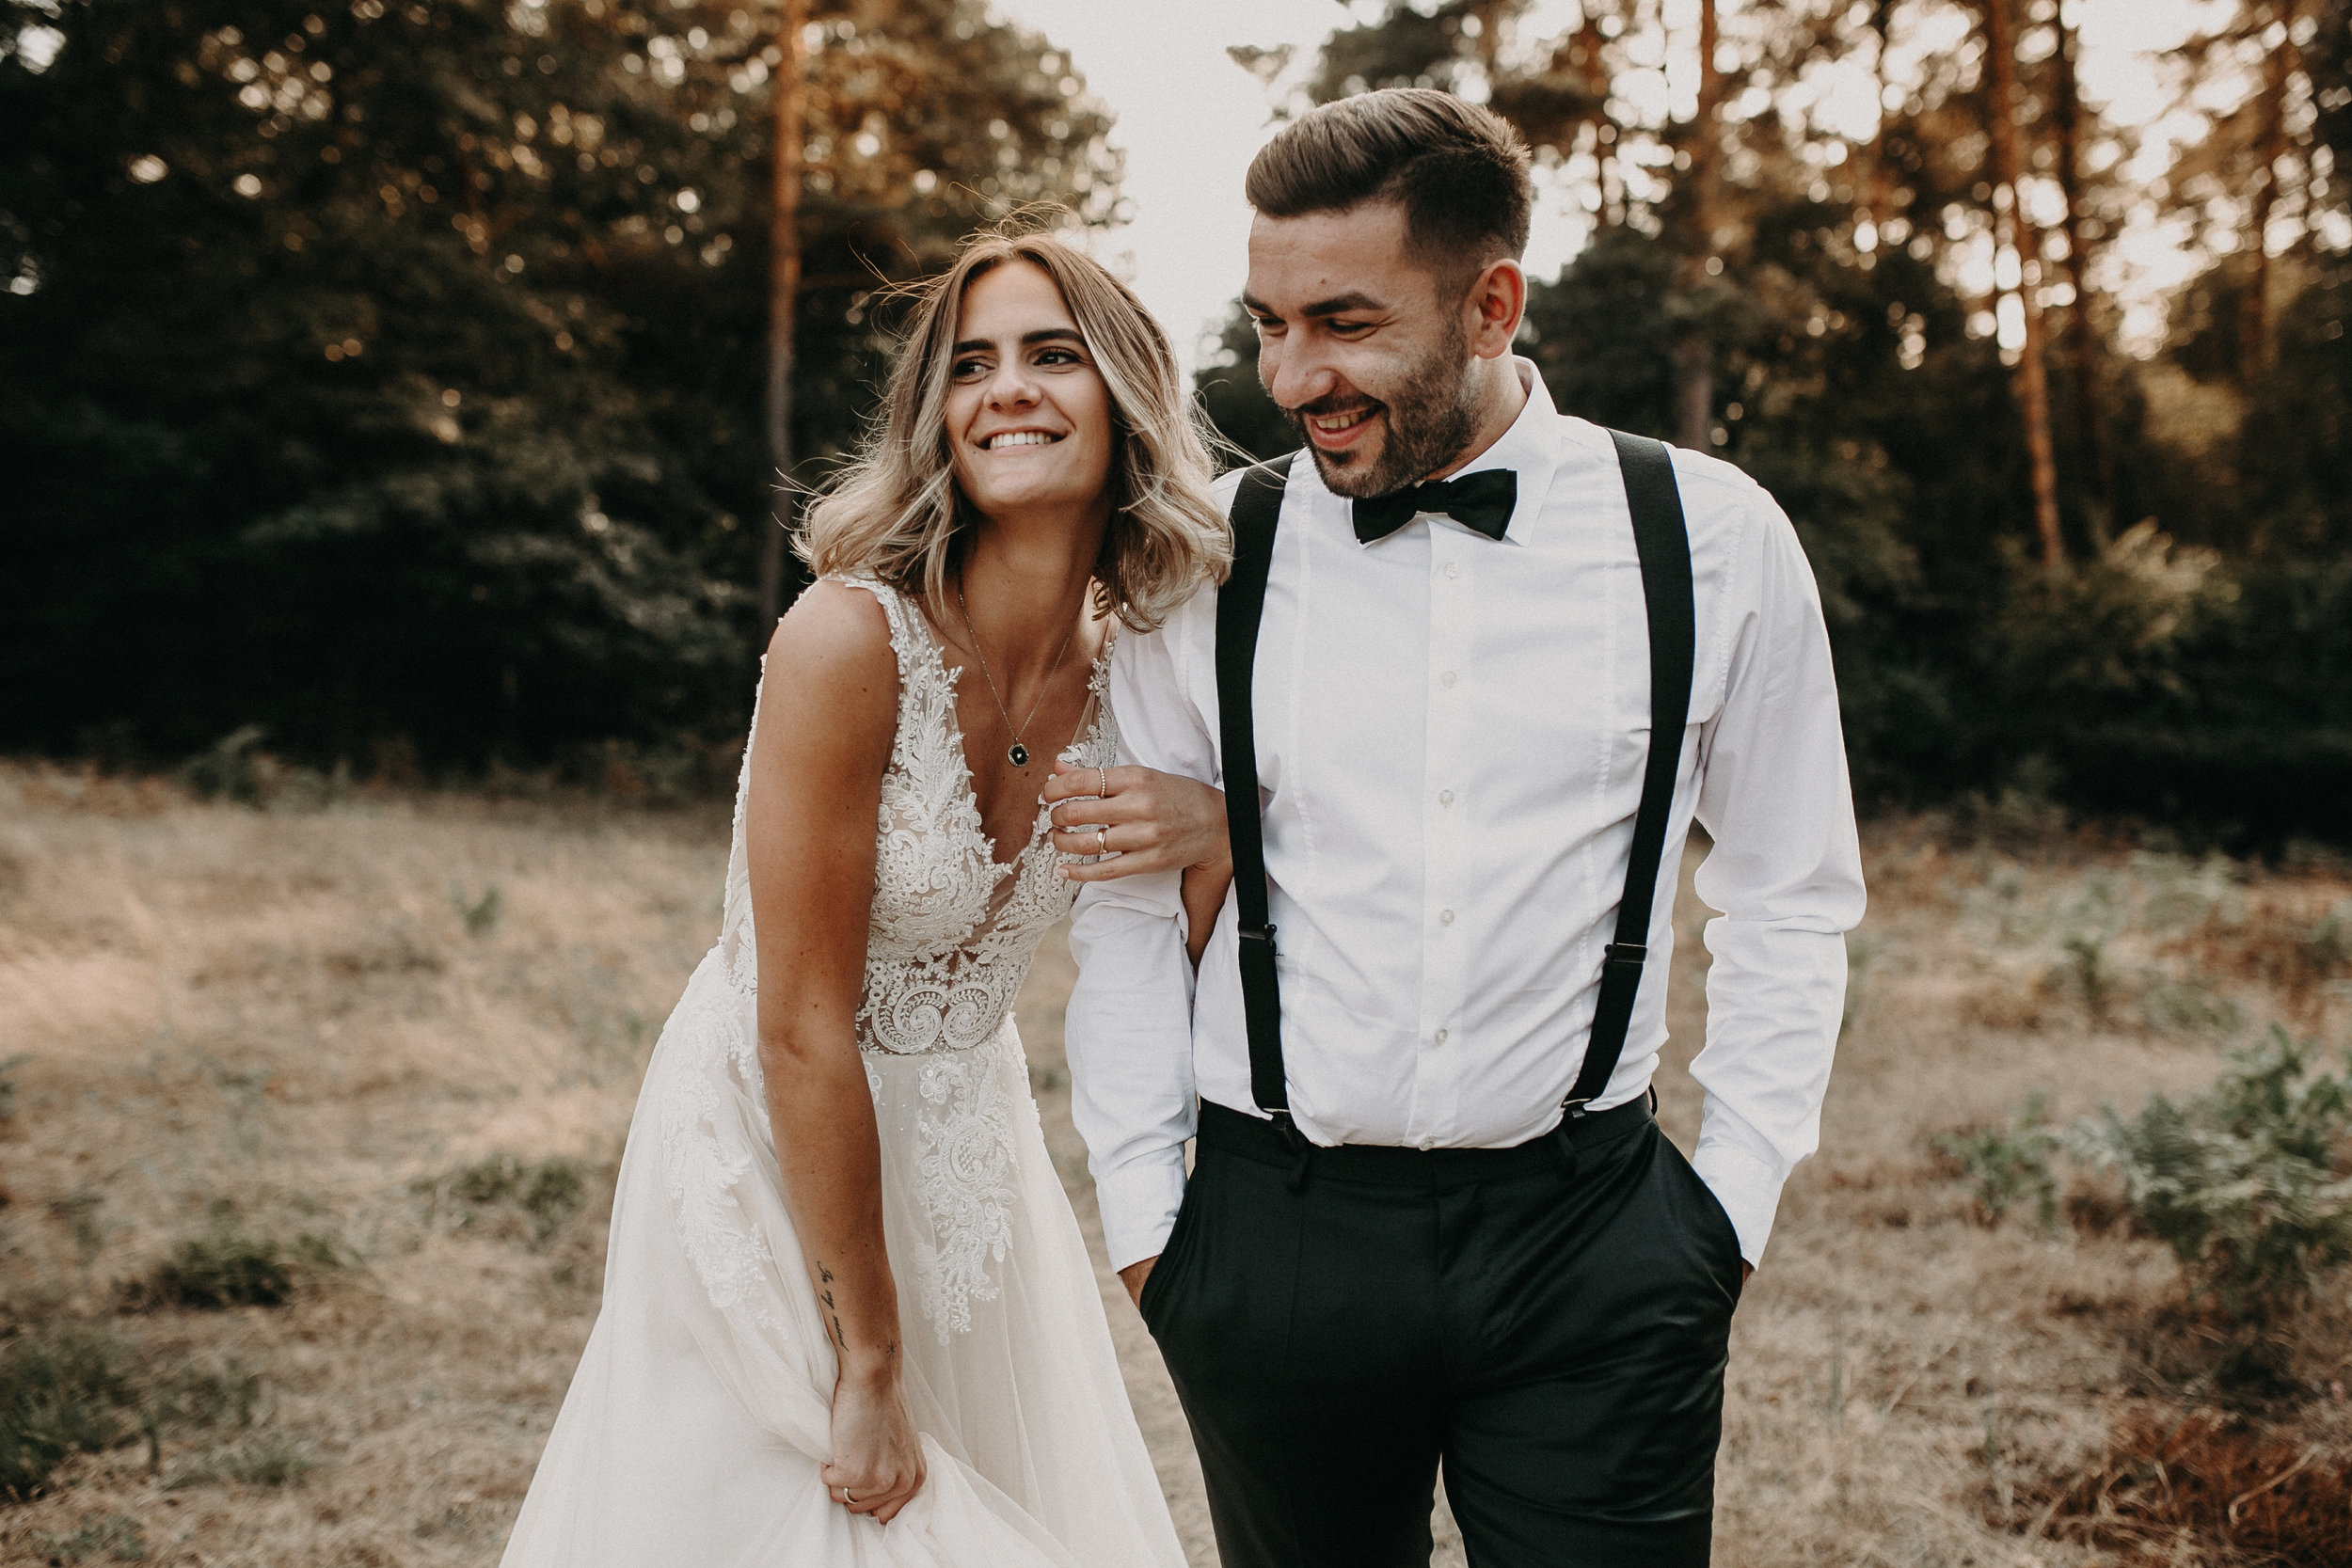 043After Wedding Jacky + Paddy August 2018.jpg